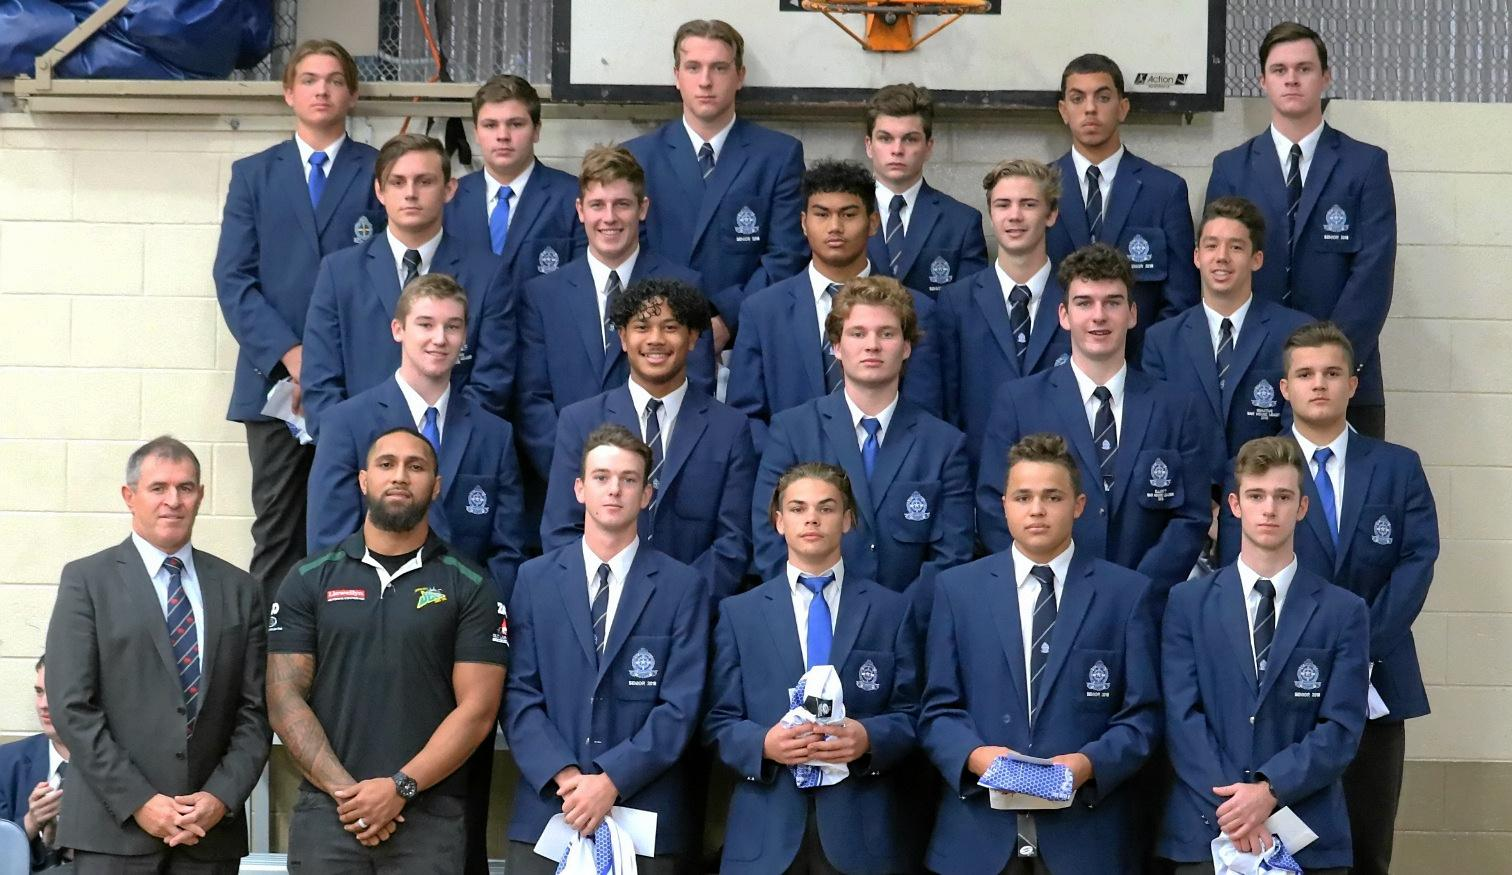 Ipswich Jets player and St Edmunds old boy Tyson Lofipo  handed out the jumpers to the school's Confraternity team before they travel to Charters Towers.